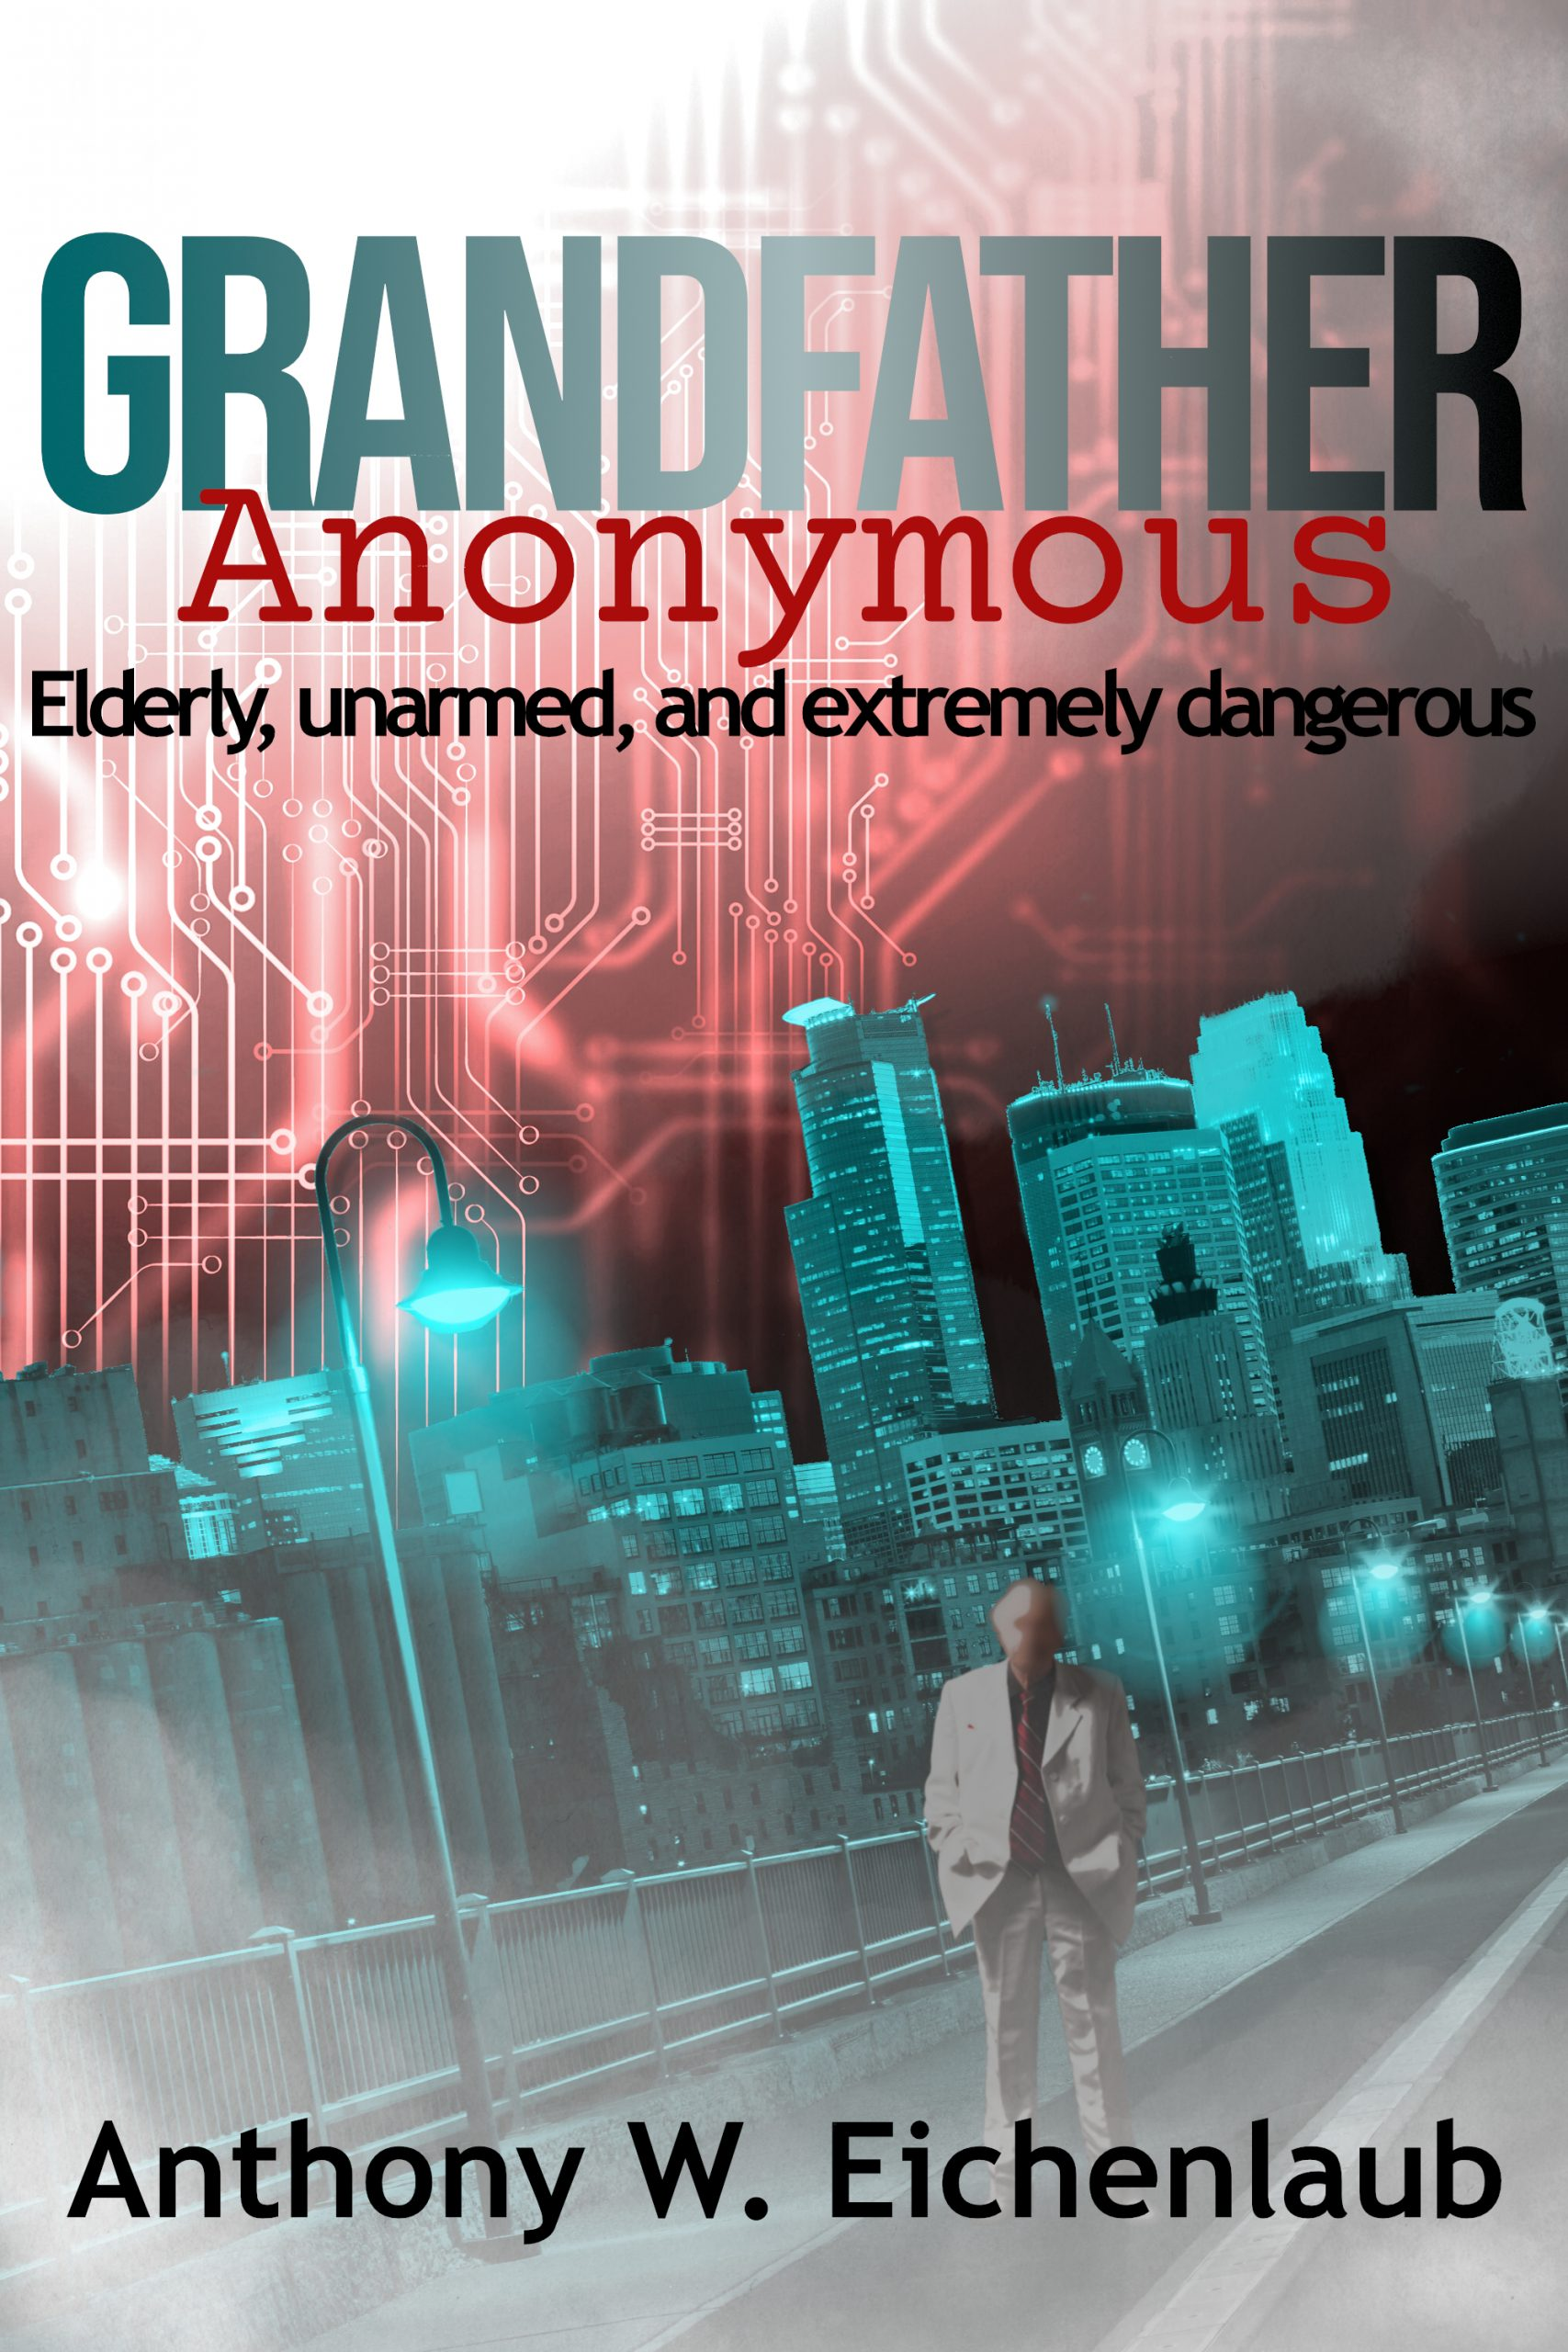 Book cover of Grandfather Anonymous. Blurred man standing in front of a Minneapolis skyline.